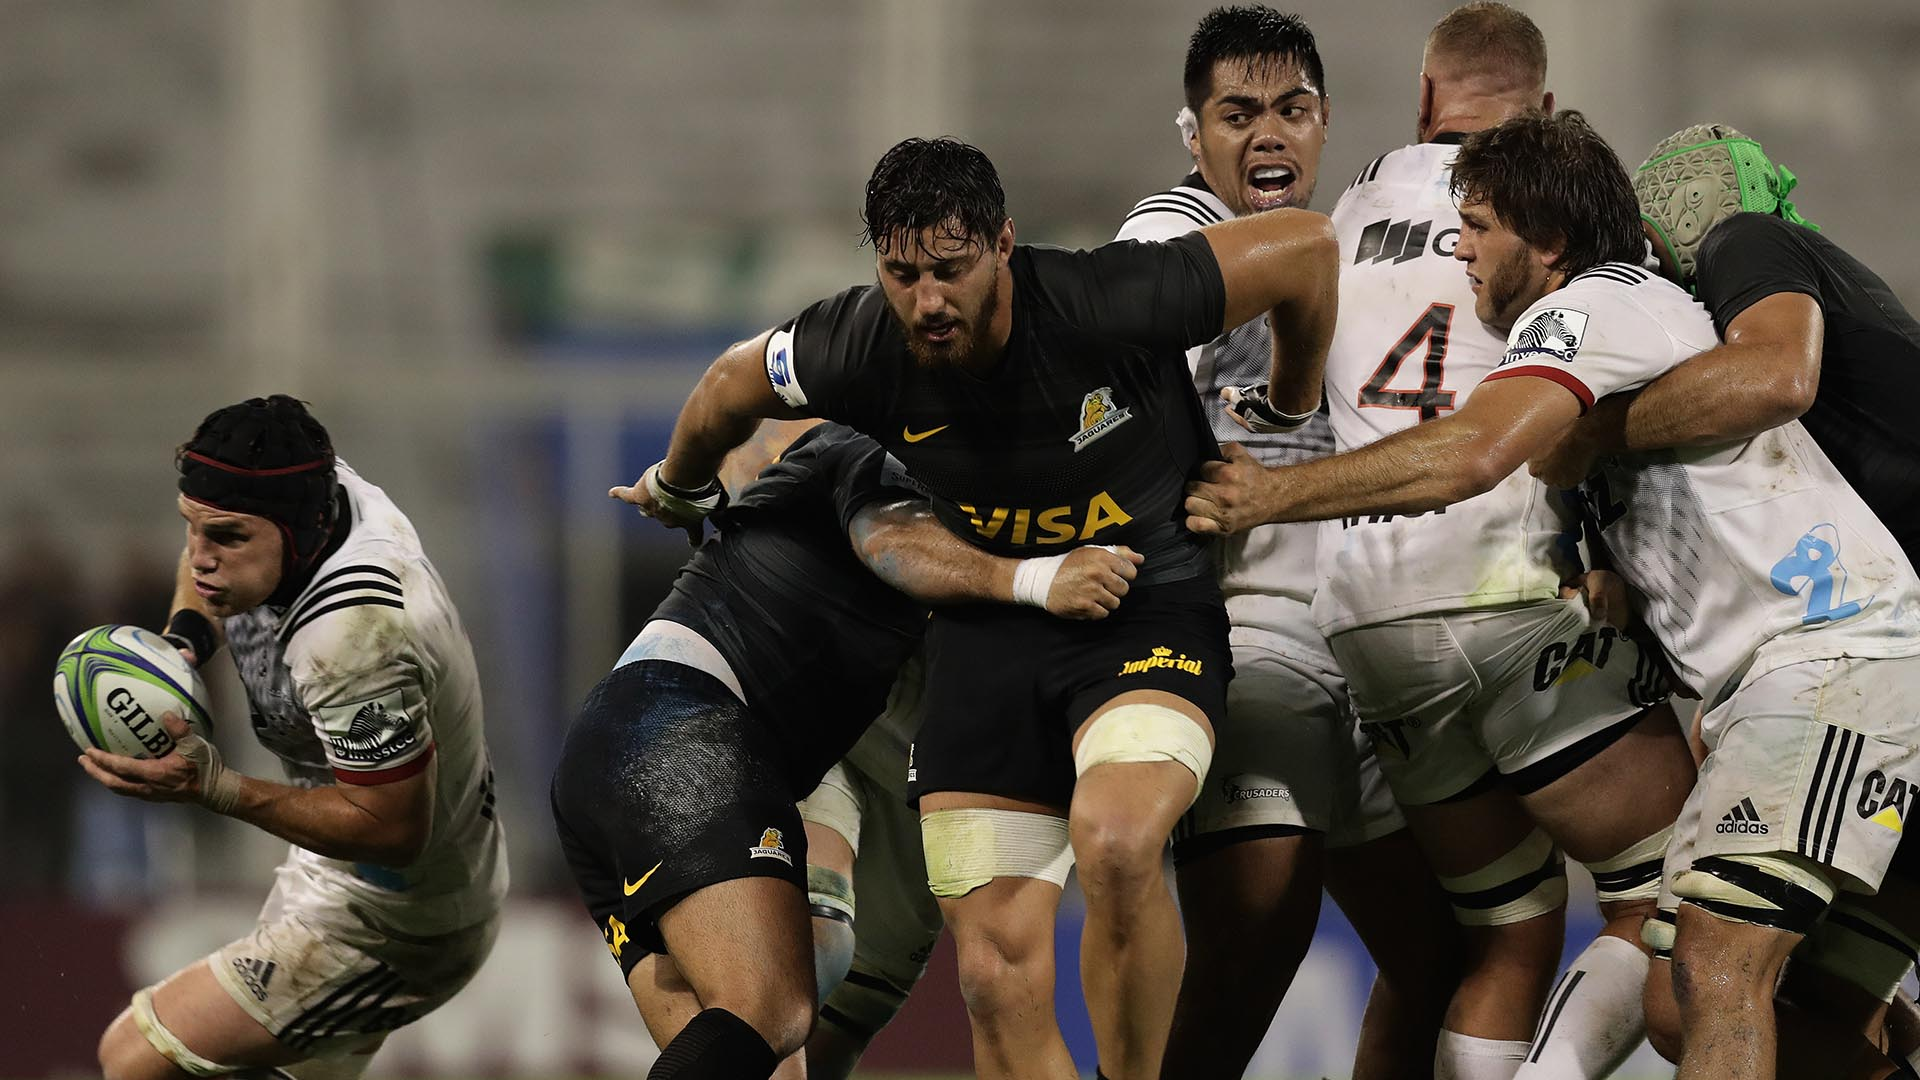 New Zealand's Crusaders flanker Matt Tood (L) runs with the ball past Argentina's Jaguares players during their Super Rugby match at Jose Amalfitani stadium in Buenos Aires, Argentina on April 7, 2018. / AFP PHOTO / ALEJANDRO PAGNI